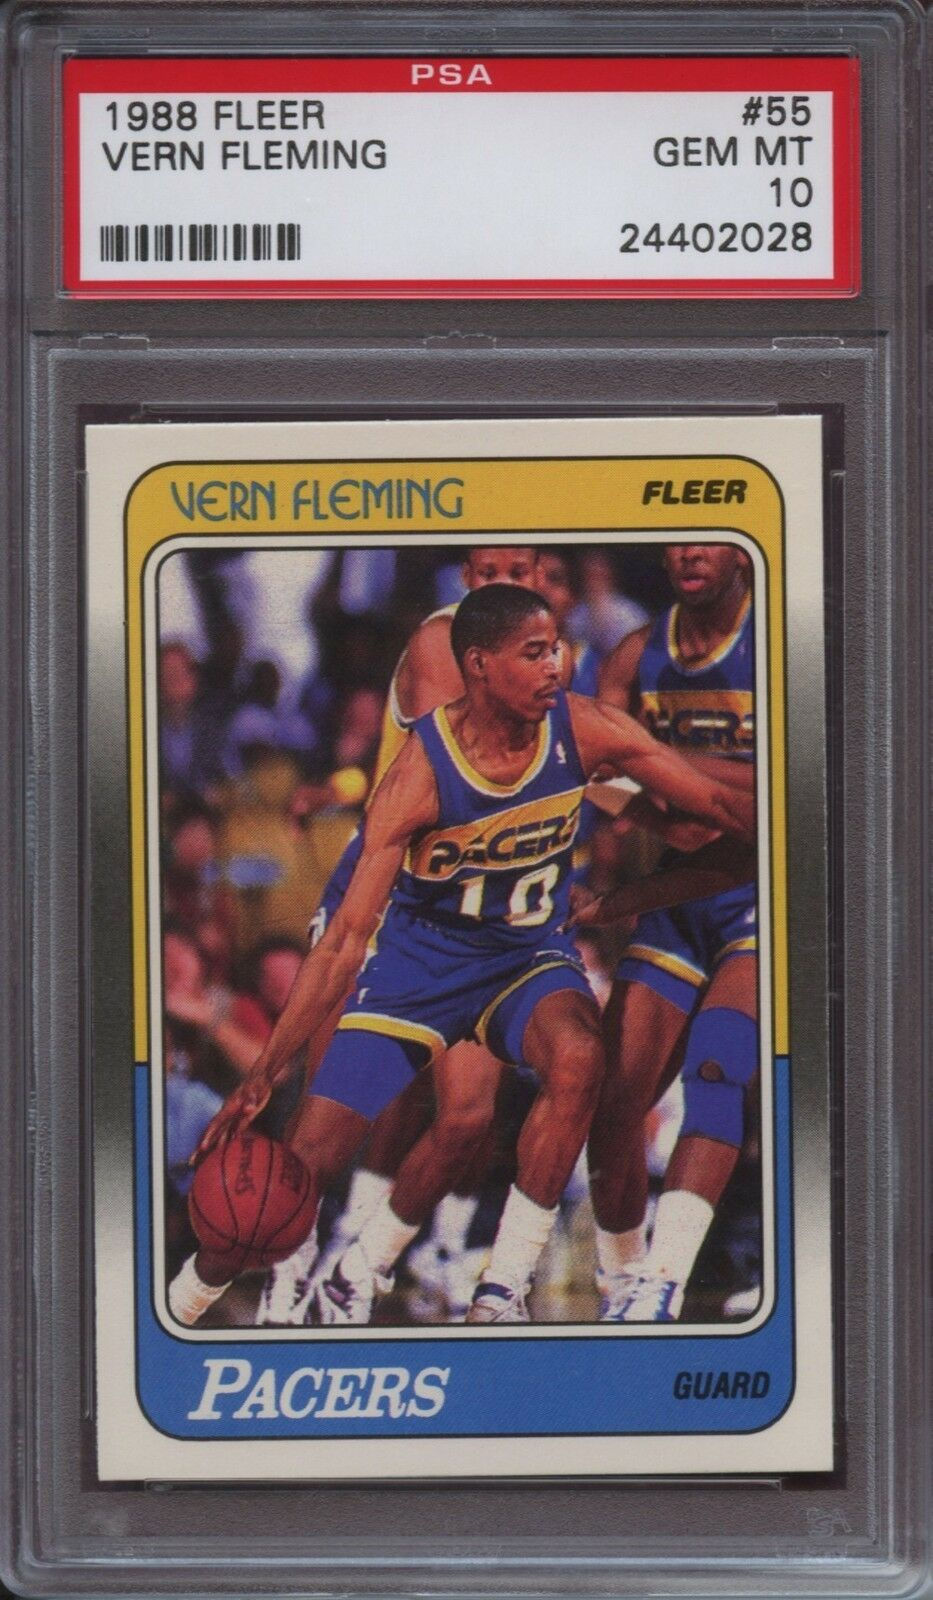 1988 Fleer Vern Fleming 55 Basketball Card